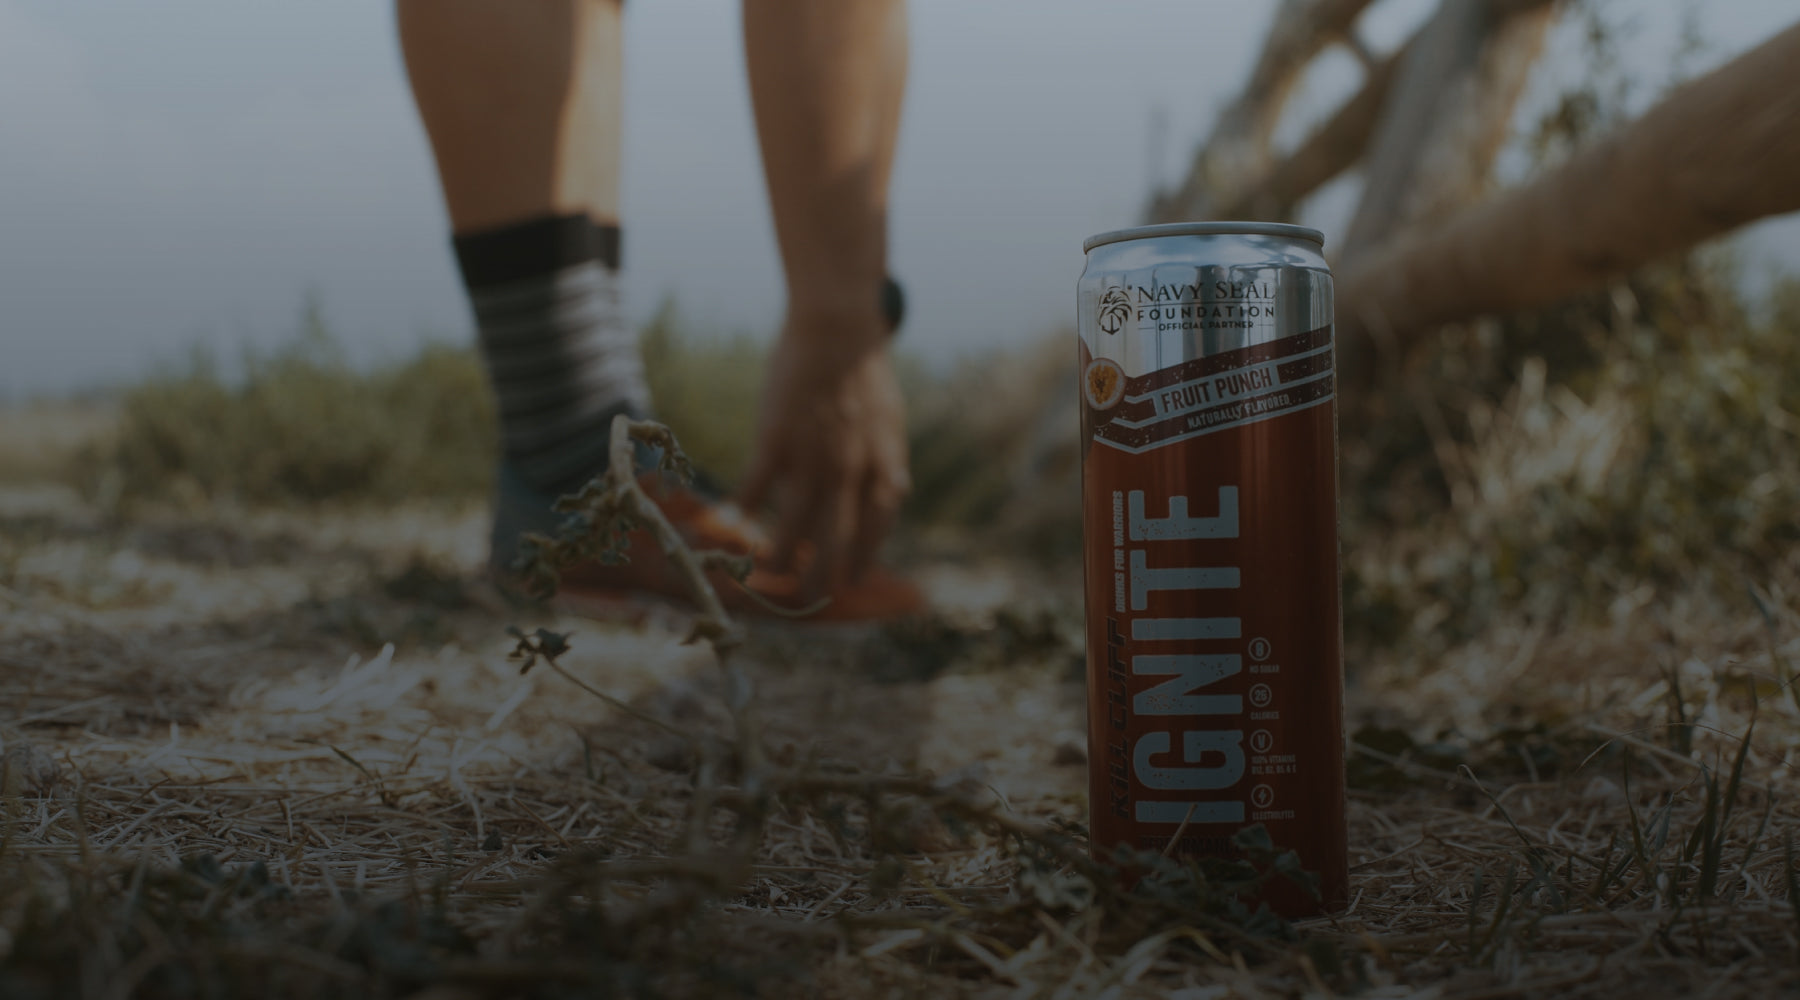 KILL CLIFF - Best Performance Energy Drinks - Clean, Healthy